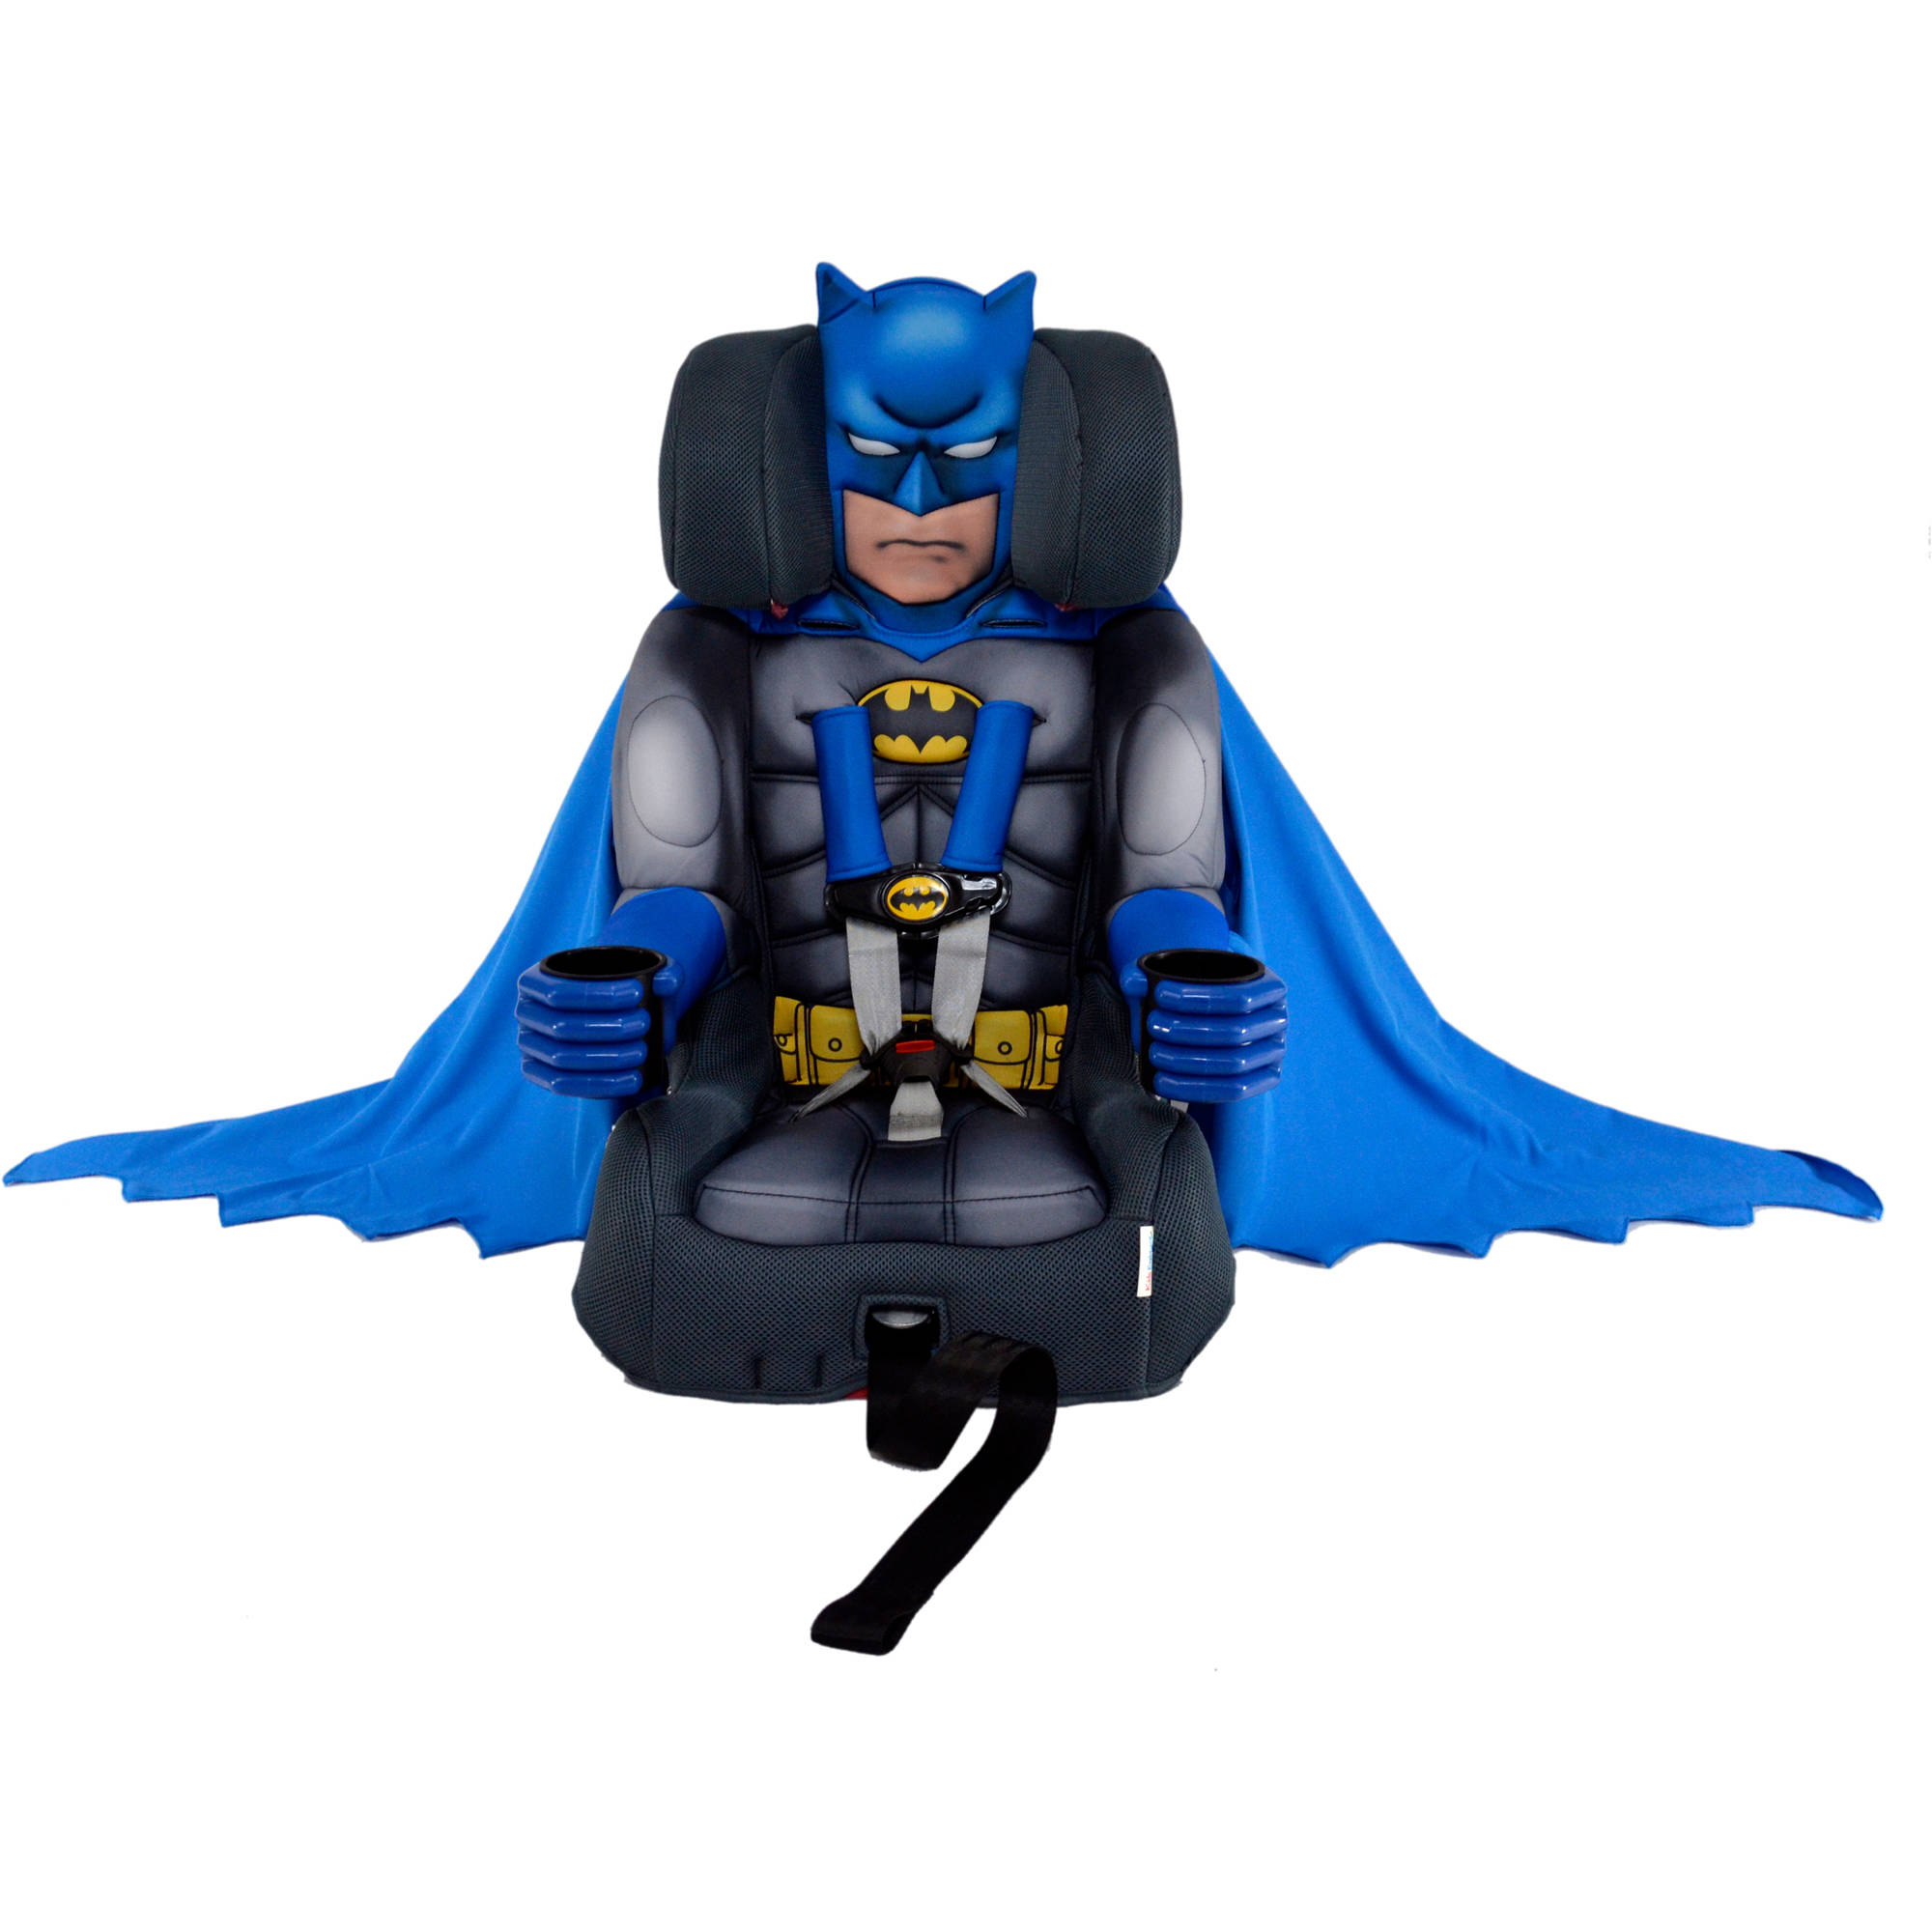 Kidsembrace Friendship Combination Harness Booster Car Seat, Batman